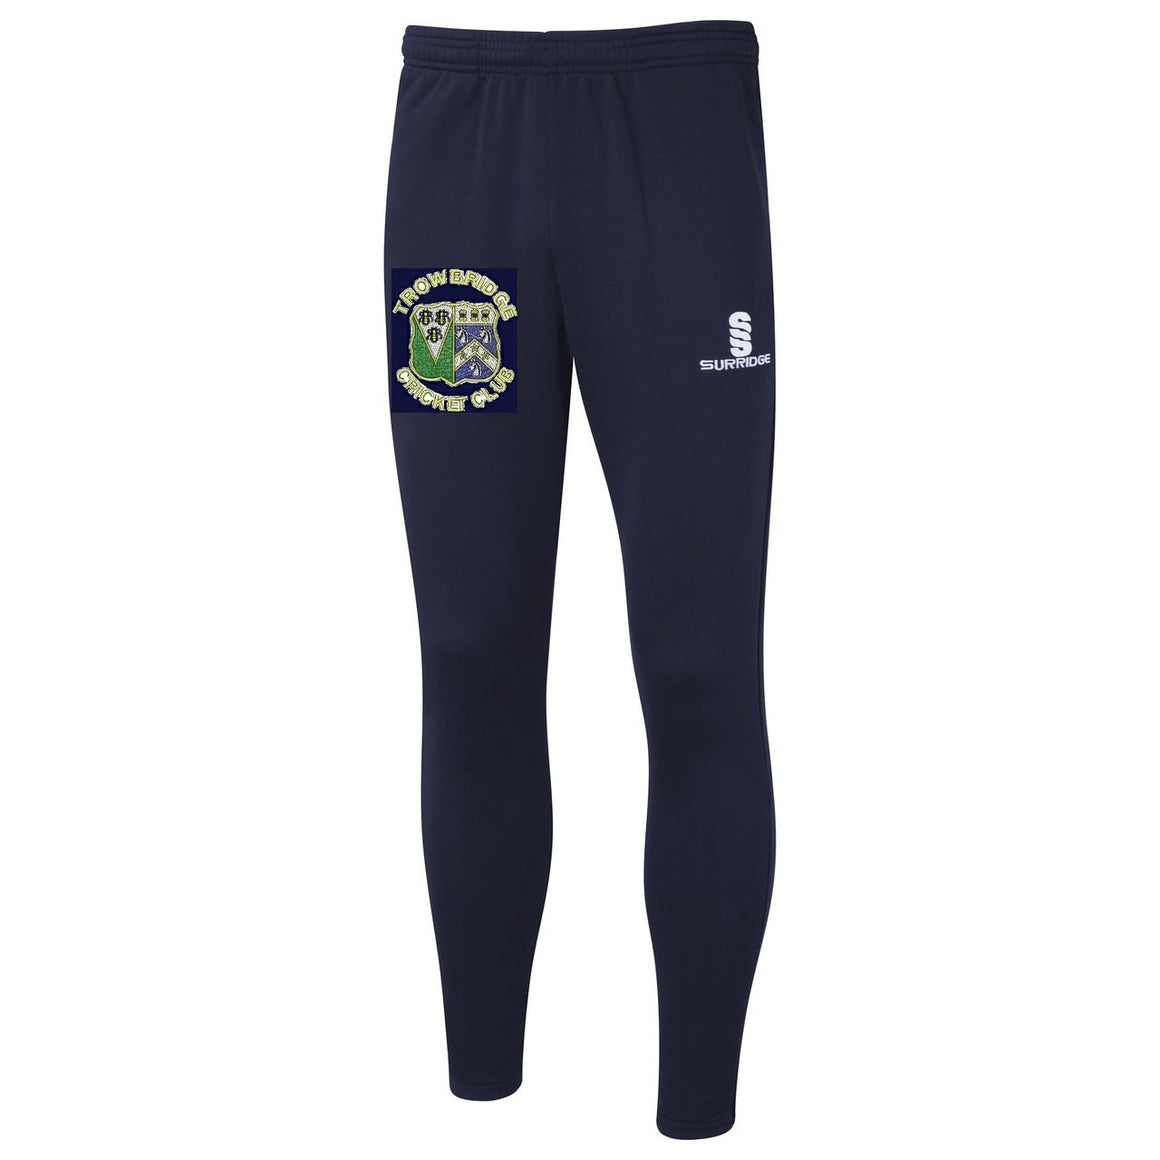 Trowbridge Junior Track Pants